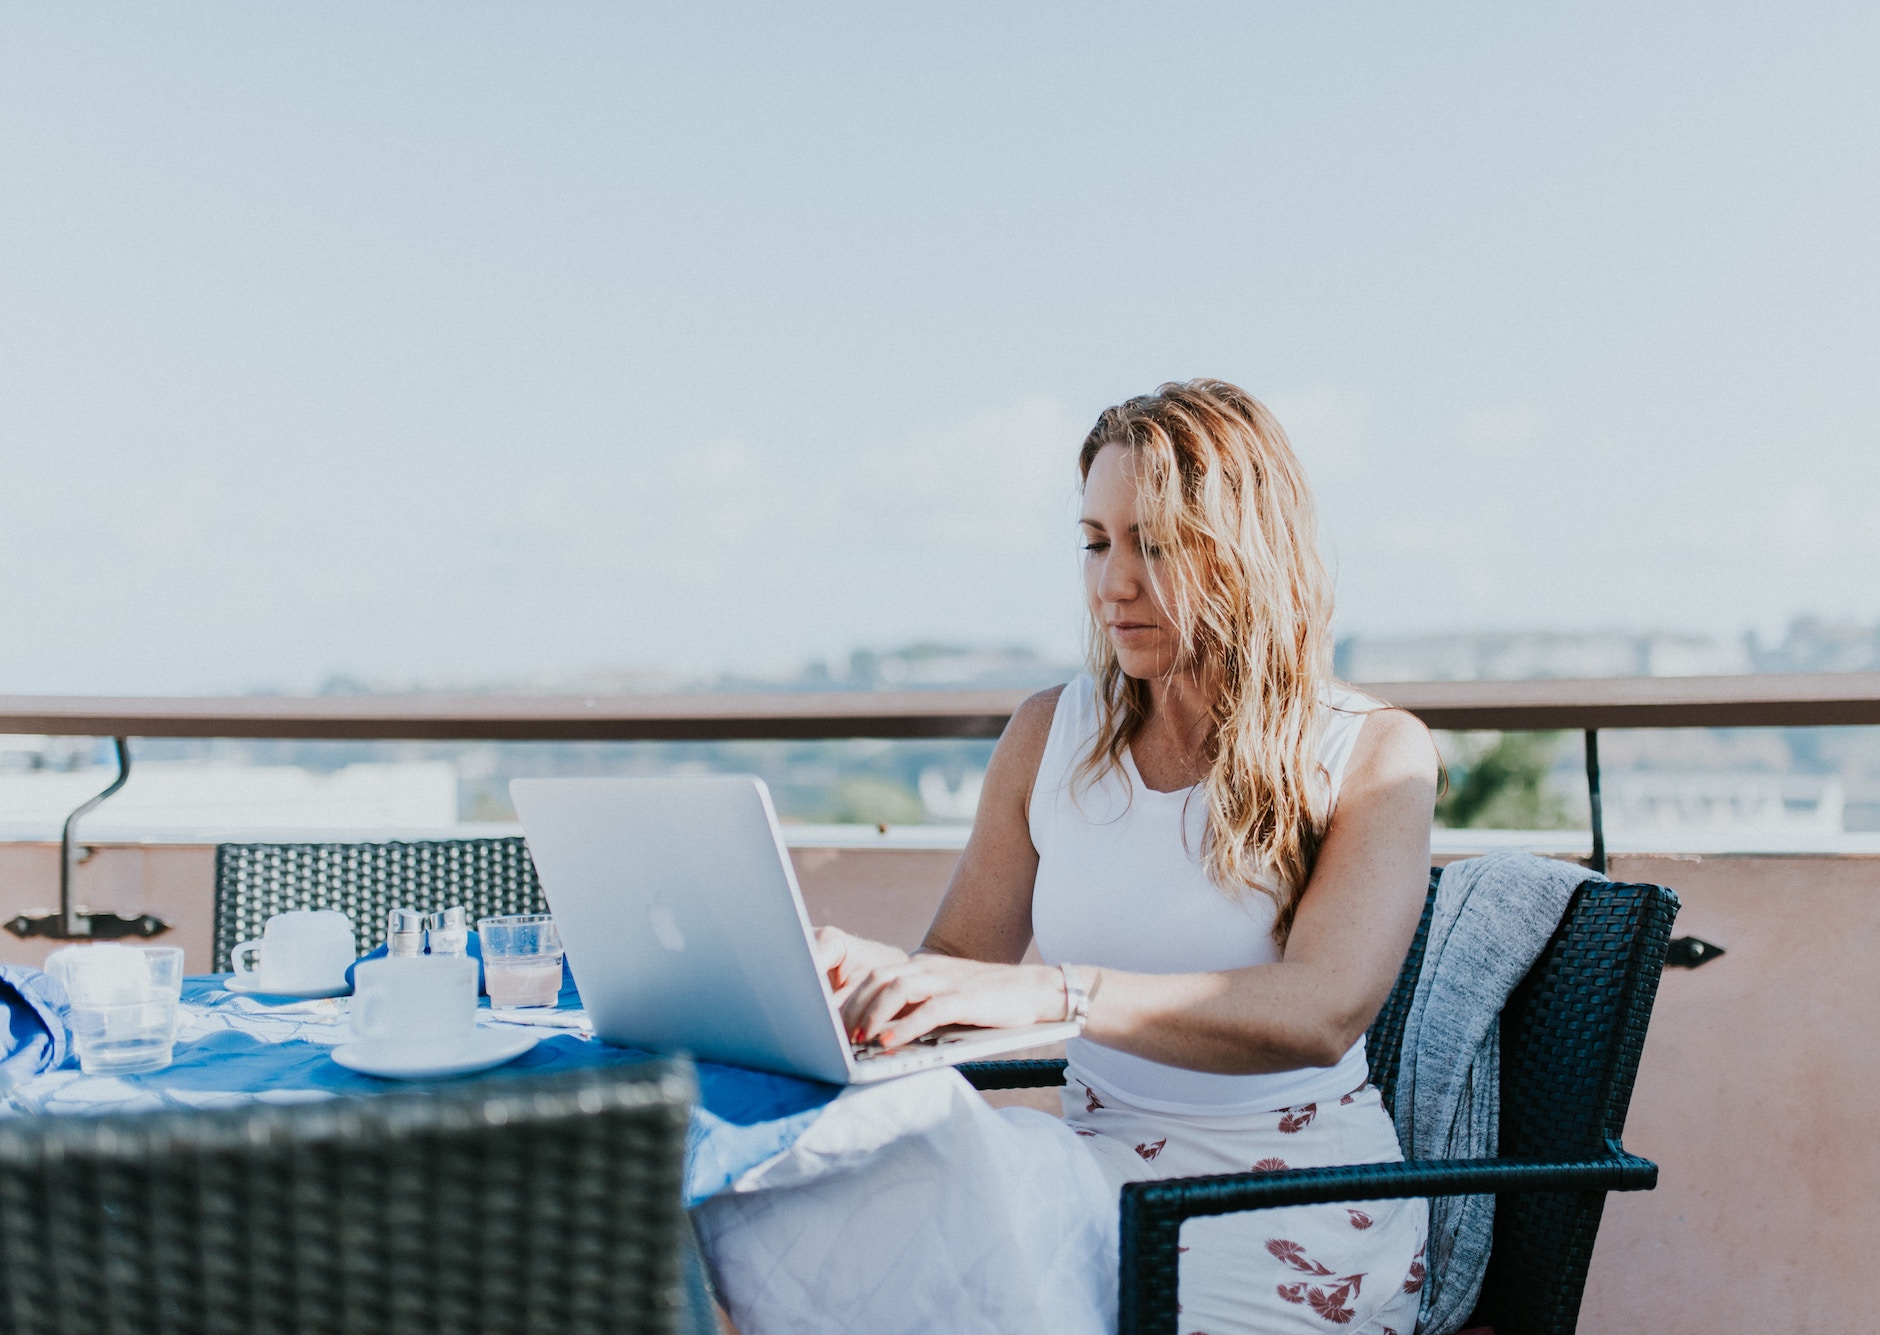 Building Strong Relationships in Remote Teams